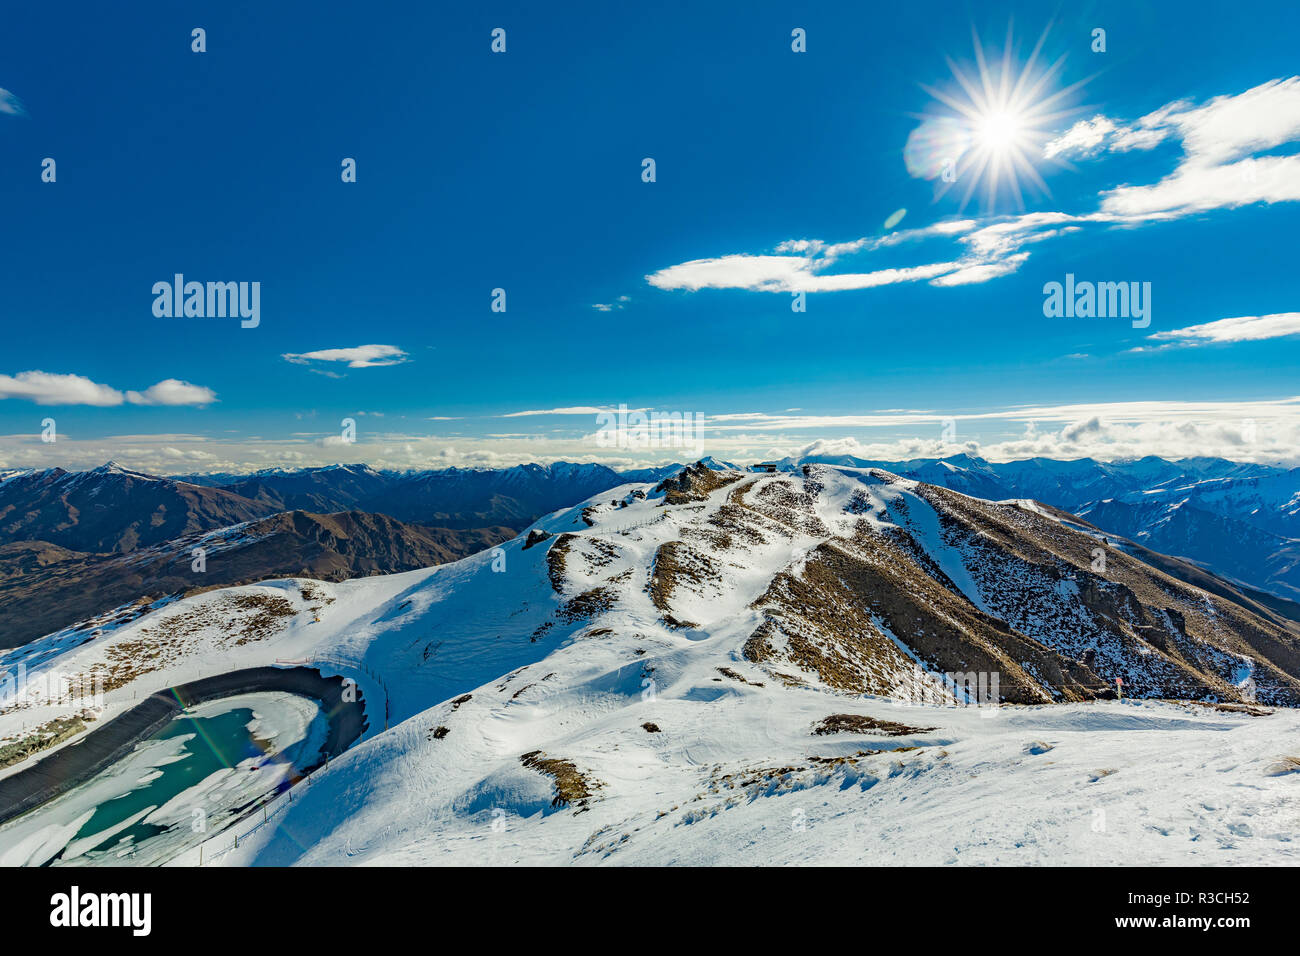 new zealand mountain panorama and snow ski slopes as seen from